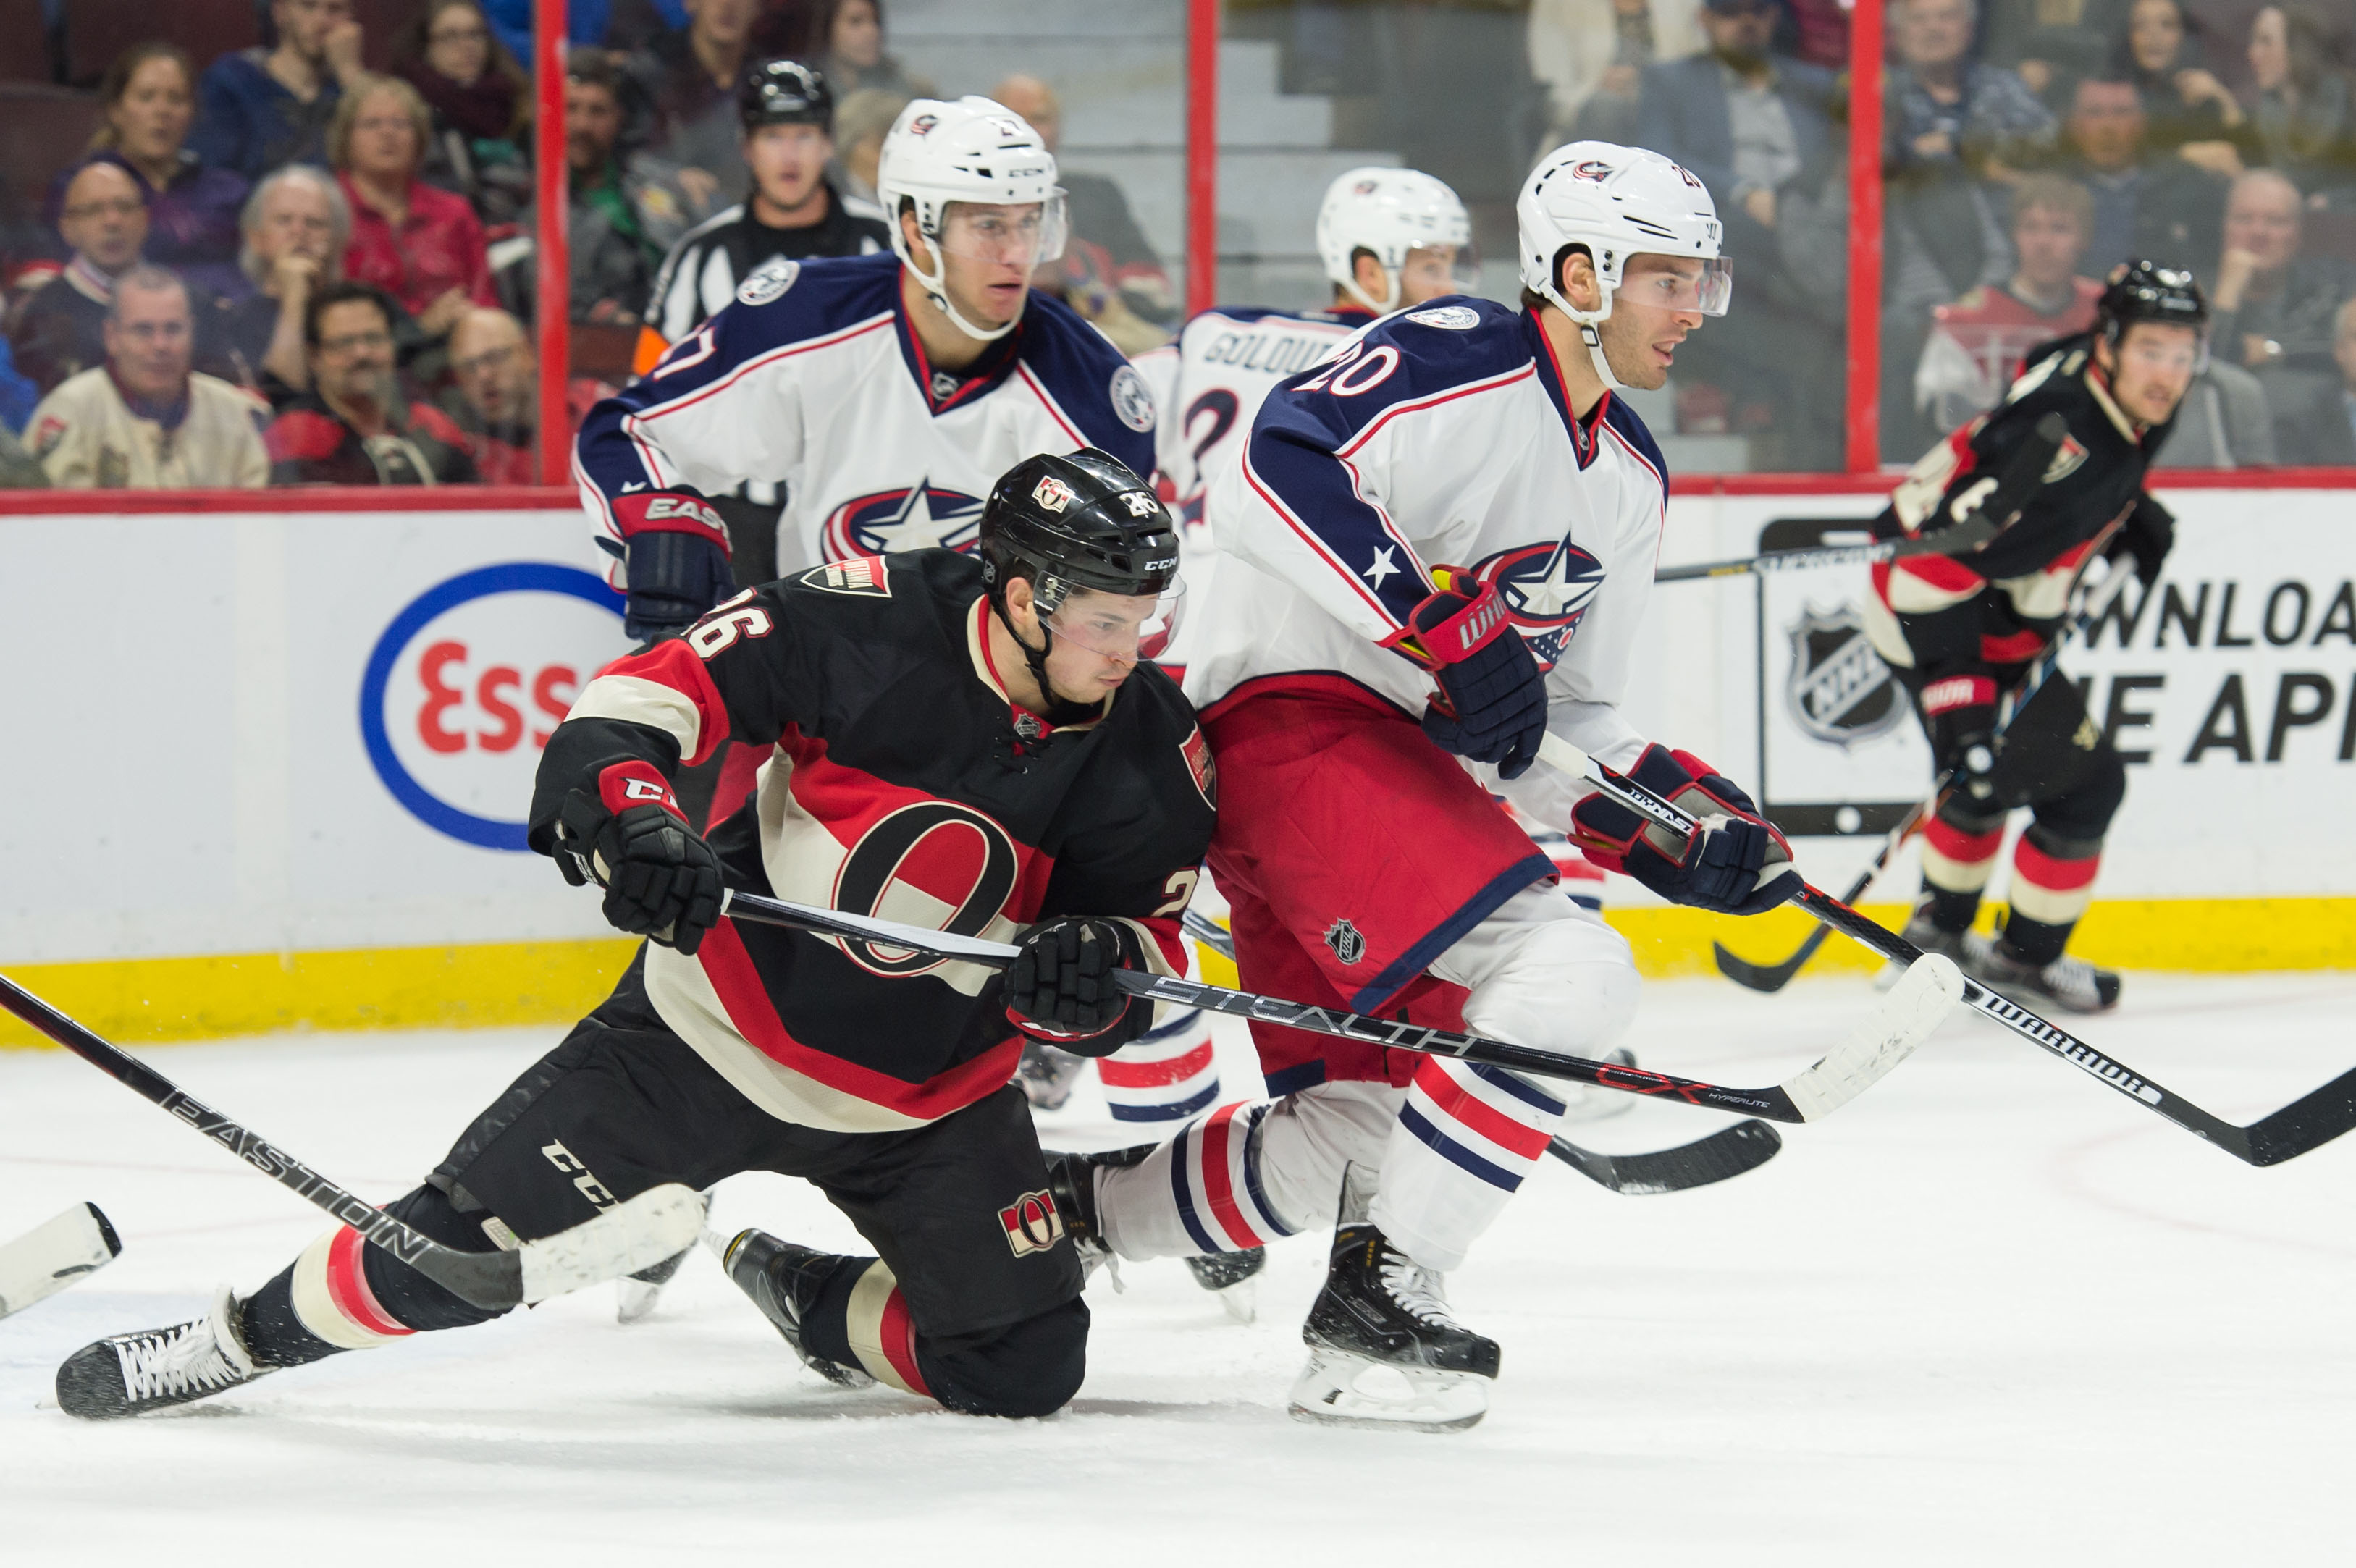 Matt Puempel drops to his knees to give the Blue Jackets a chance to score